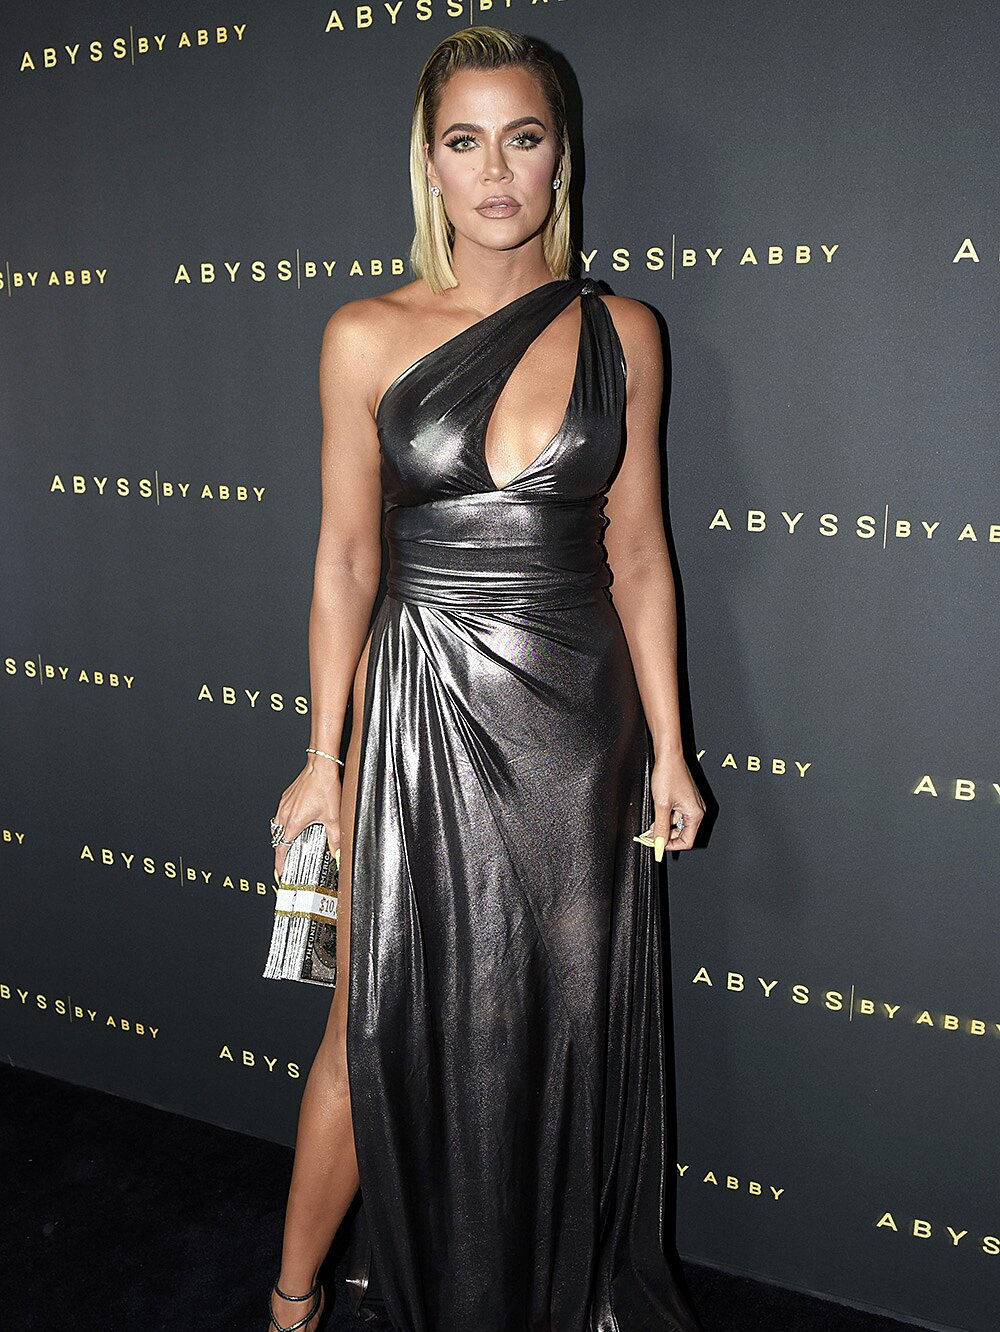 Khlo Eacute Kardashian Wears High Slit Metallic Gown At Abyss By Abby Party People Com